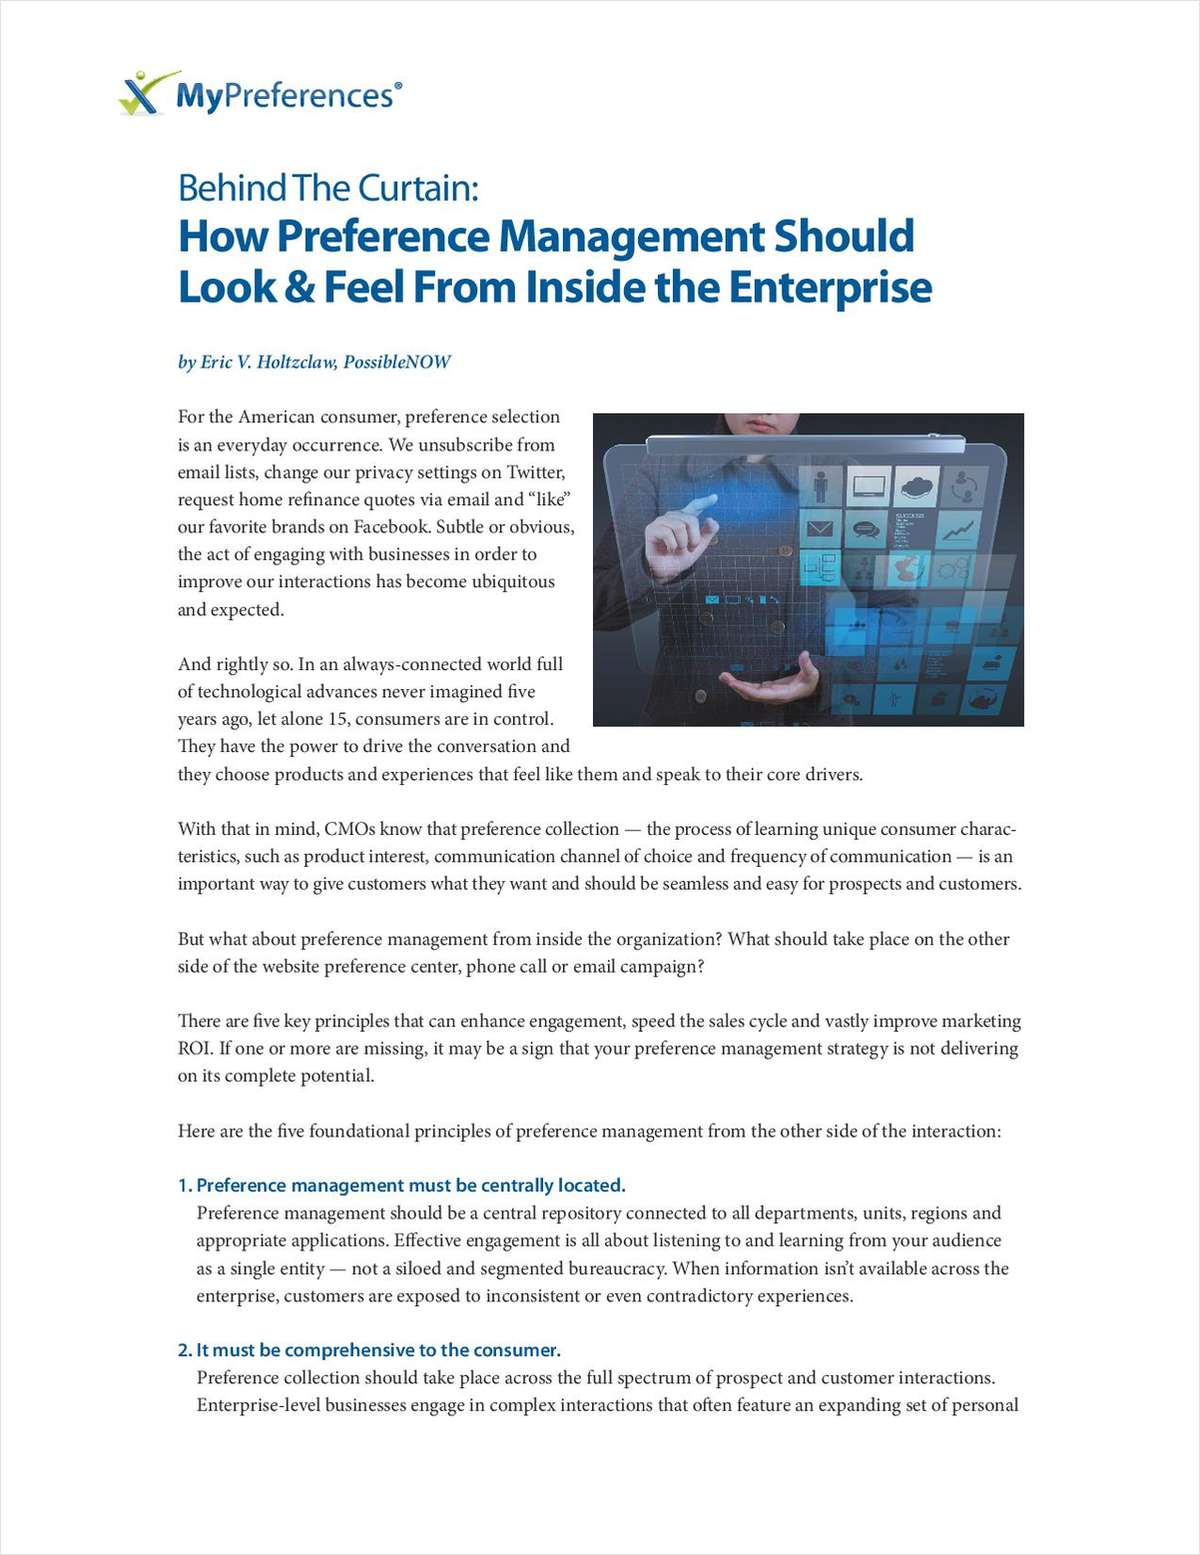 How Preference Management Should Look & Feel From Inside the Enterprise